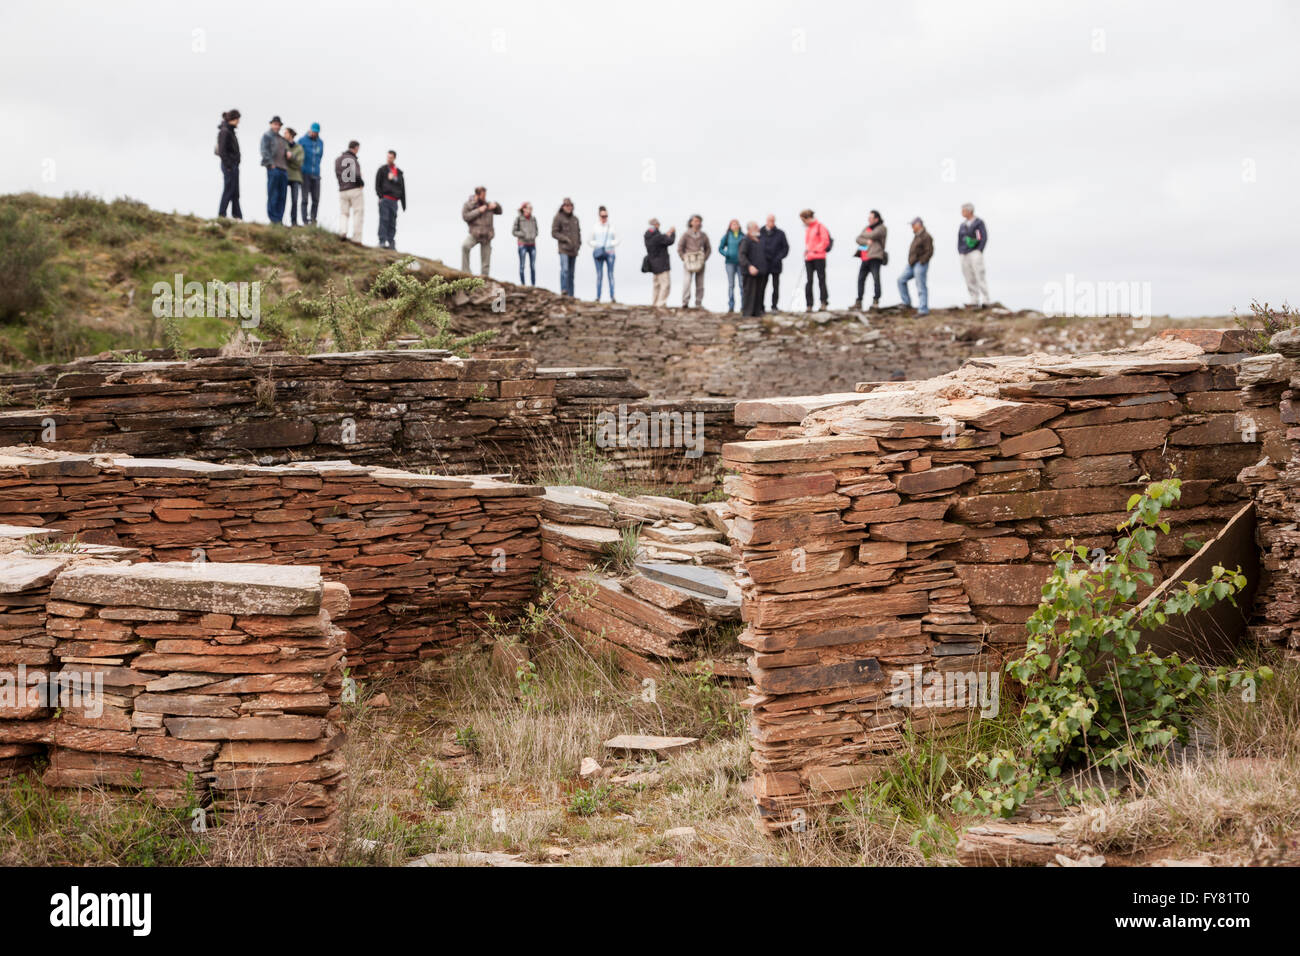 A group of people visiting the ruins of a prehistoric human settlement (Castro) in Galicia, north of Spain - Stock Image